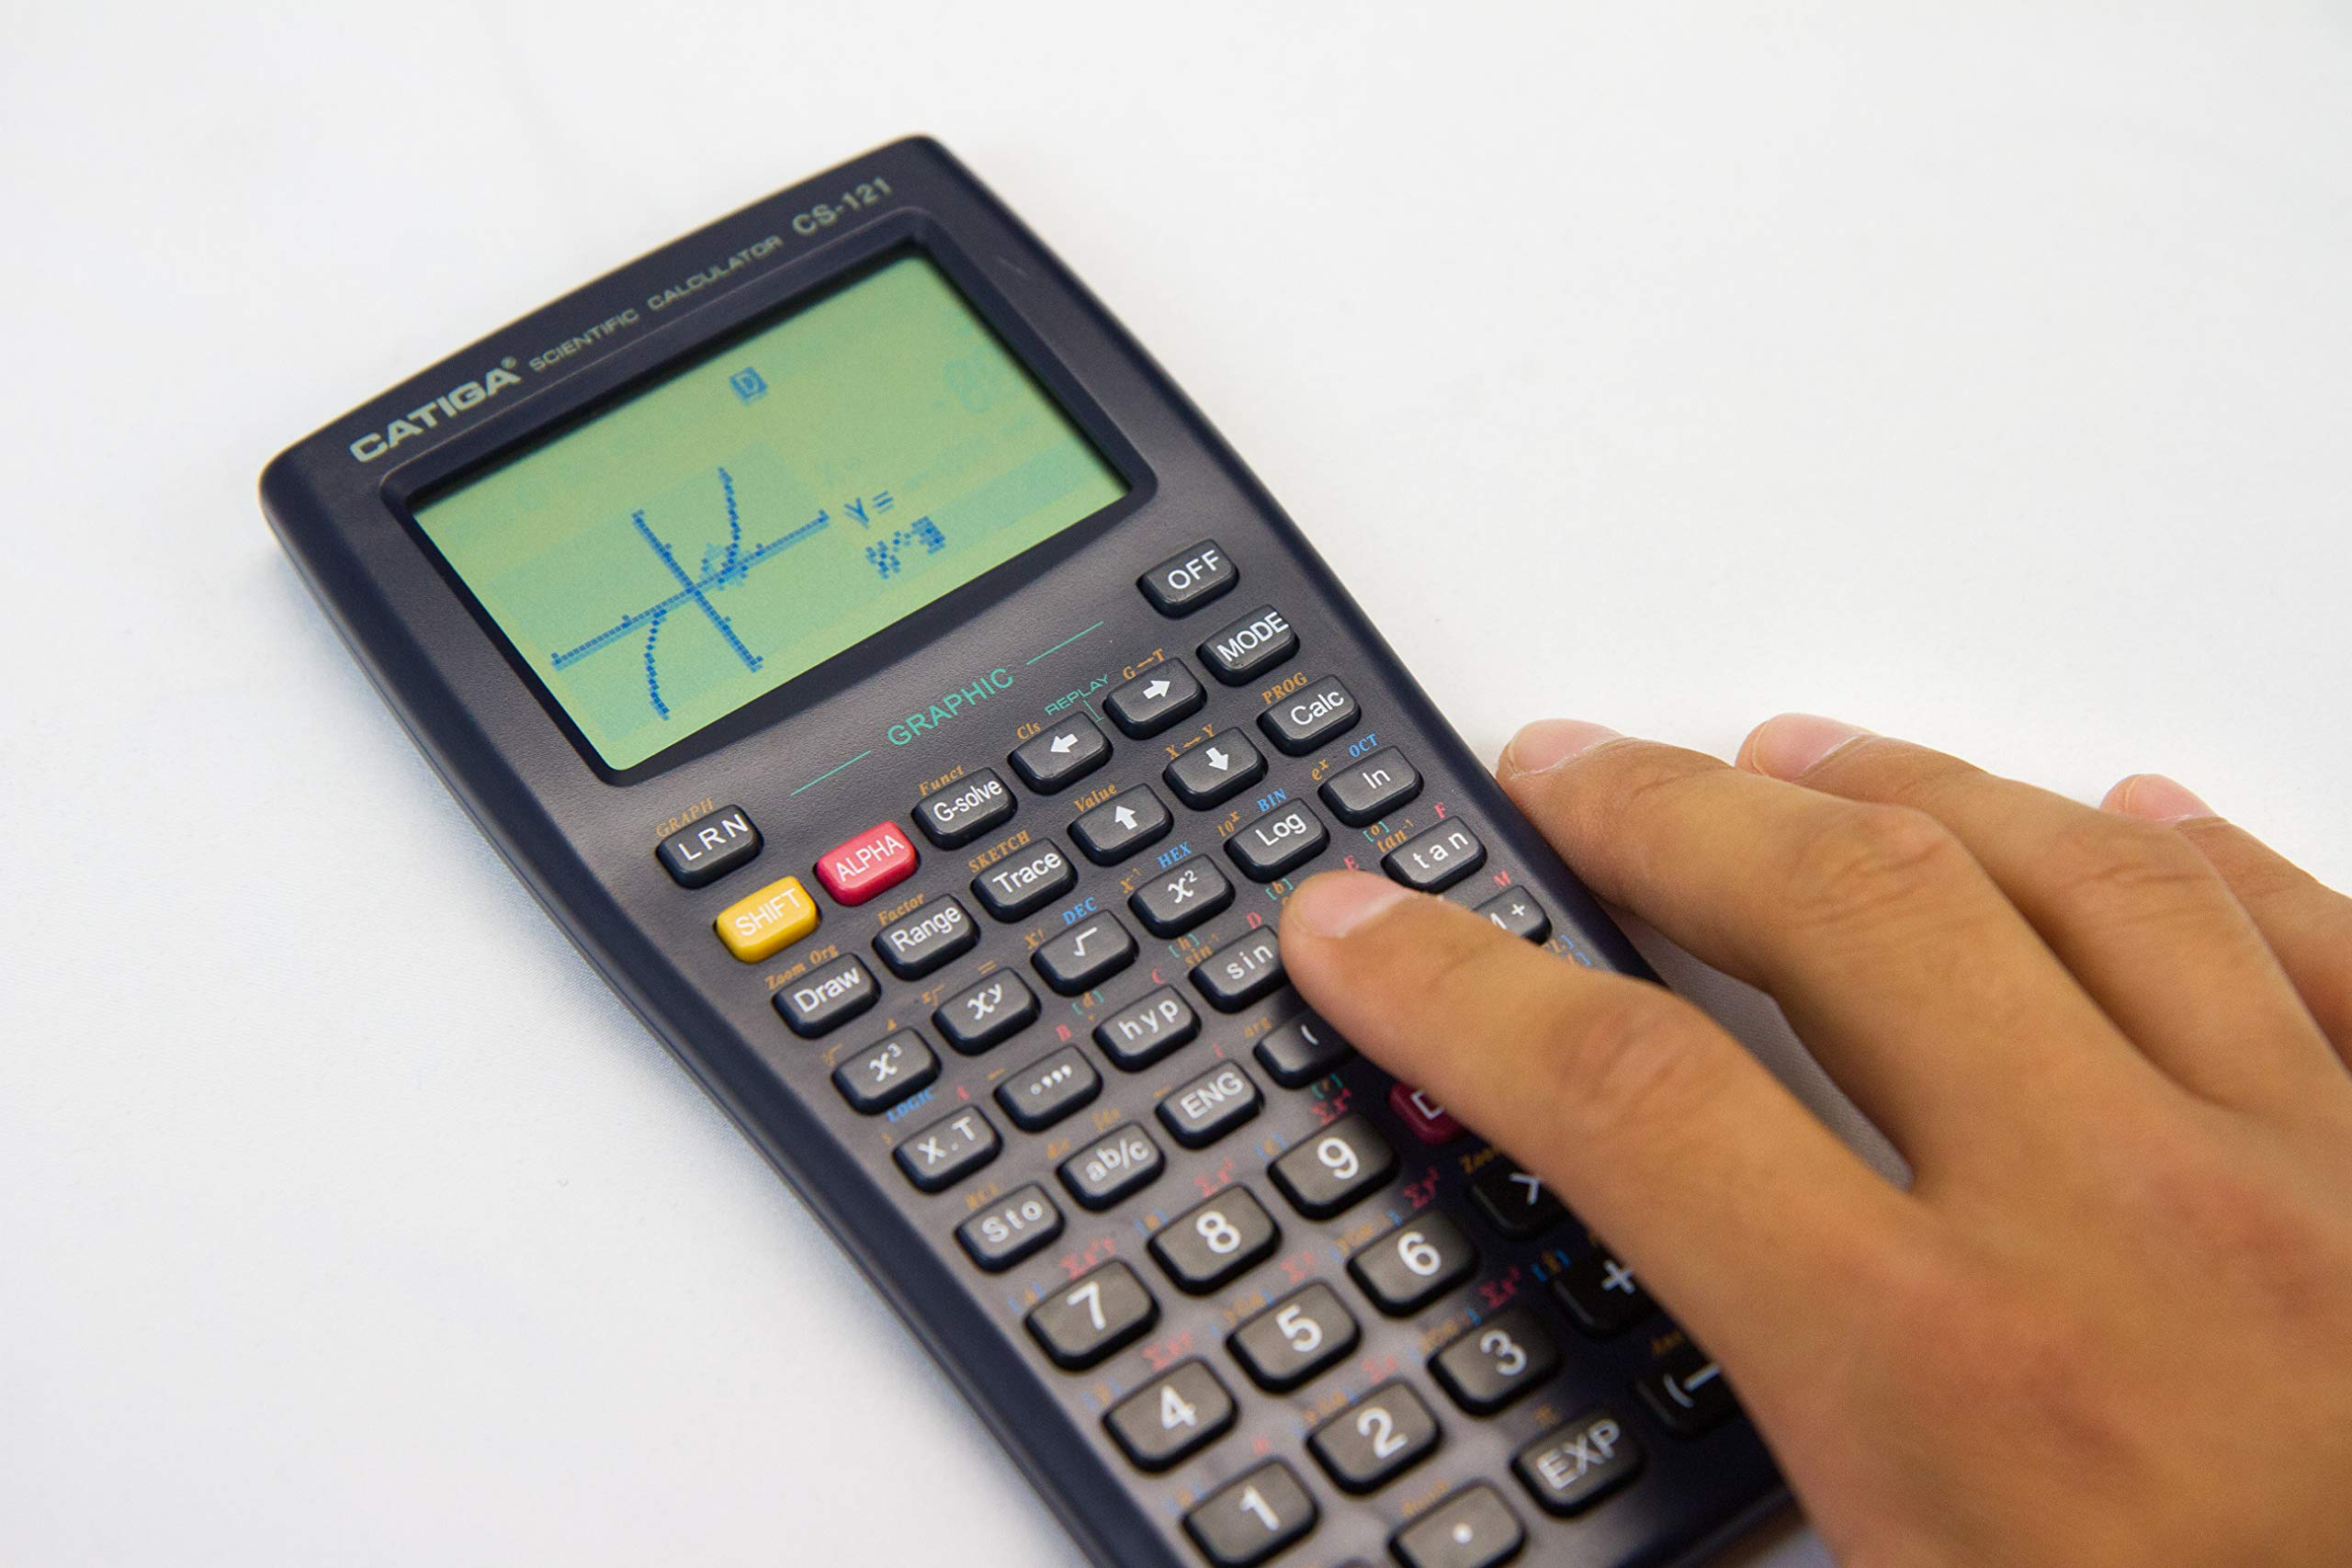 Graphing Calculator - CATIGA CS121 - Scientific and Engineering Calculator - Programmable System by CATIGA (Image #3)